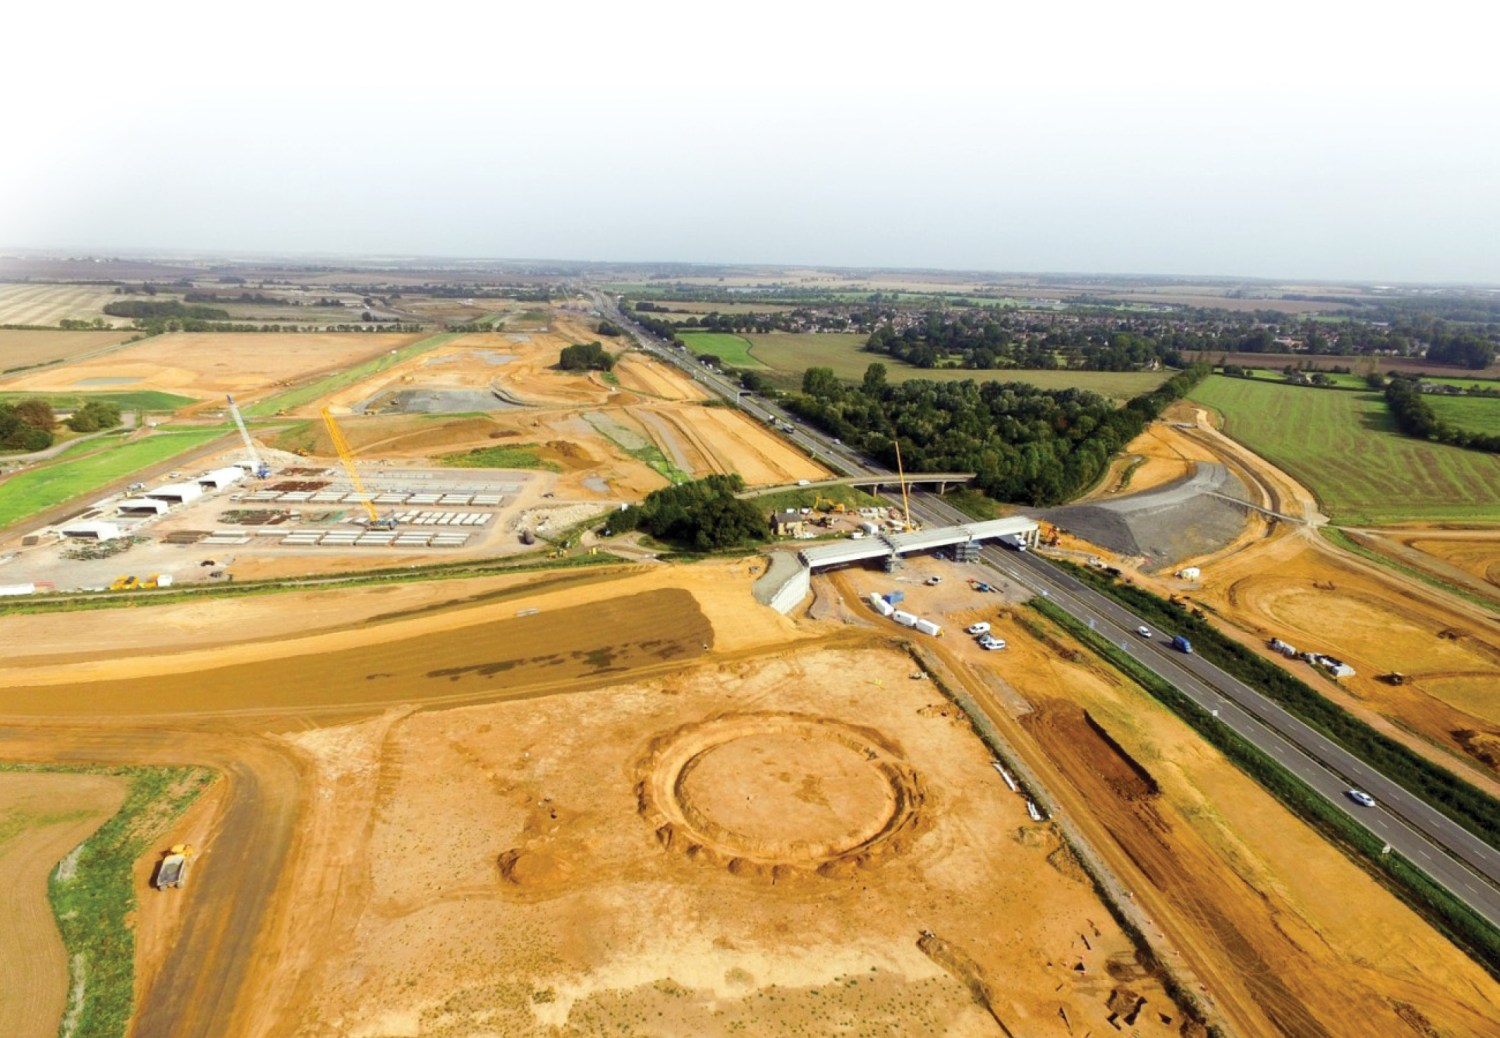 below Henges were the focus for one AoF project team. An example of these circular ditch-and-bank enclosures is shown under investigation in 2017 on the A14 Cambridge to Huntingdon Road Scheme (see CA 339 for more on this excavation).